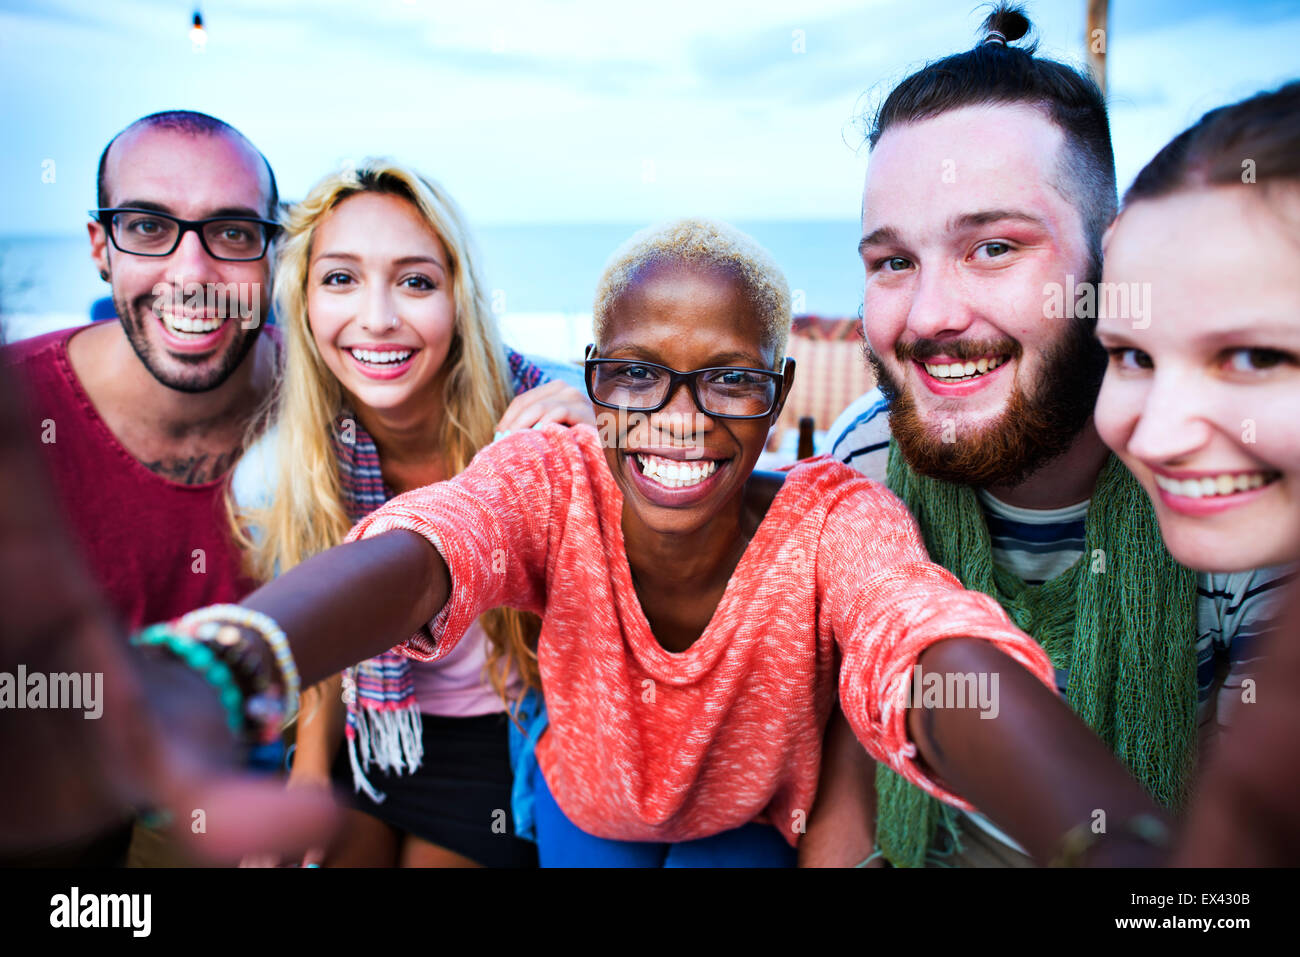 Beach Summer Party Togetherness Selfie Concept - Stock Image